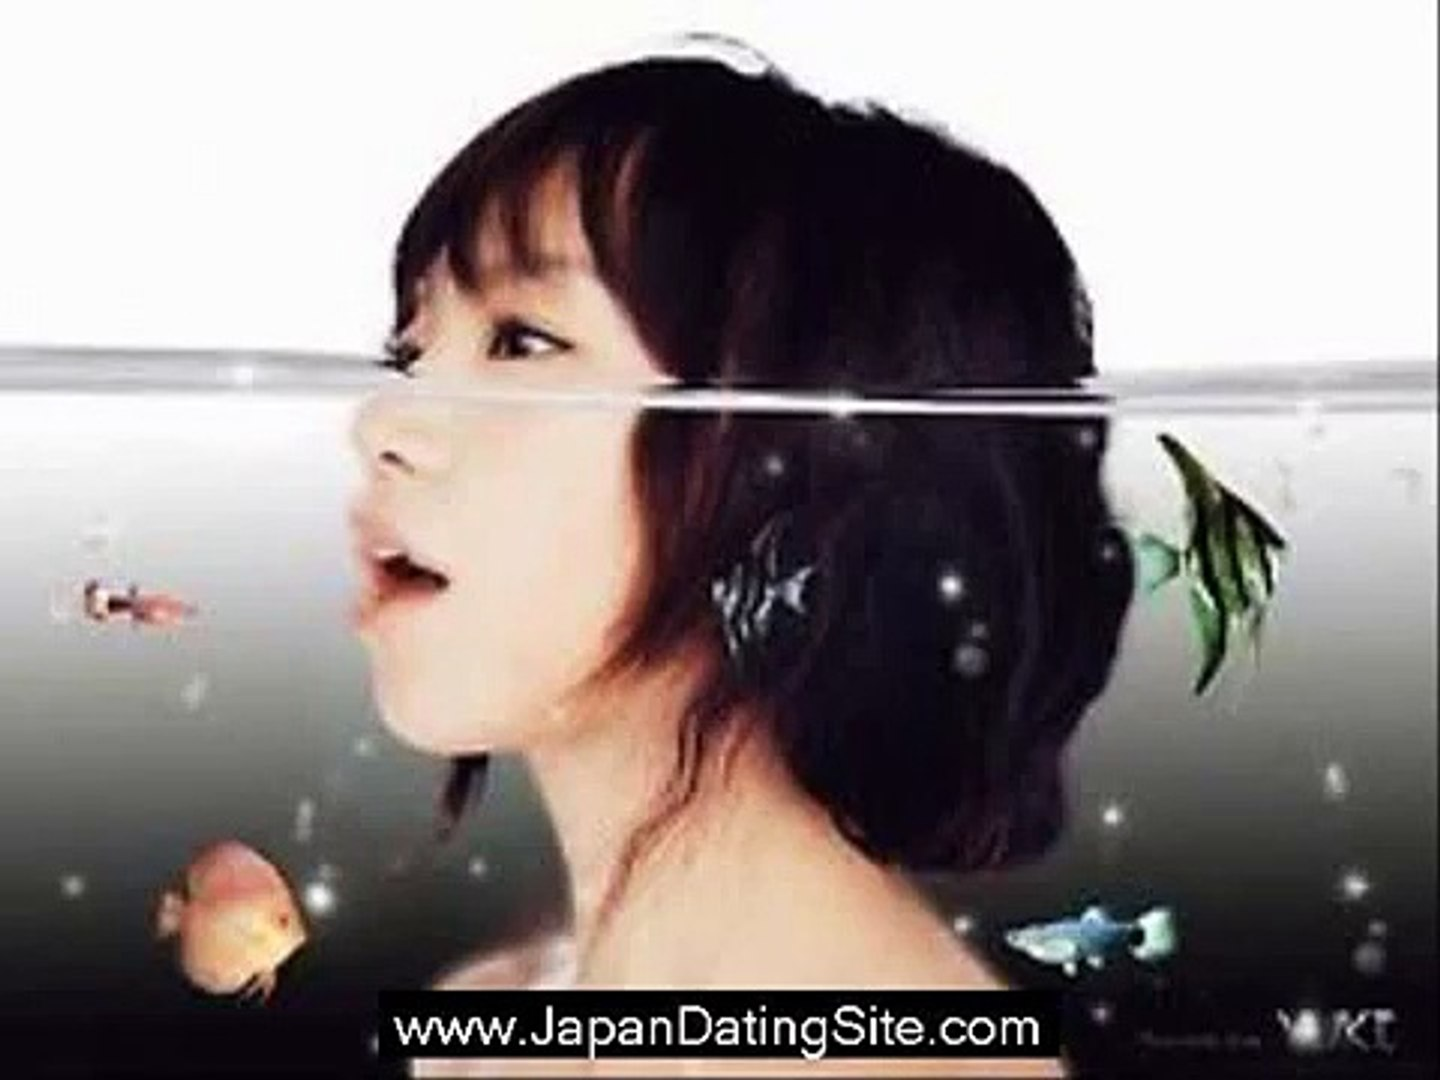 Japan dating site